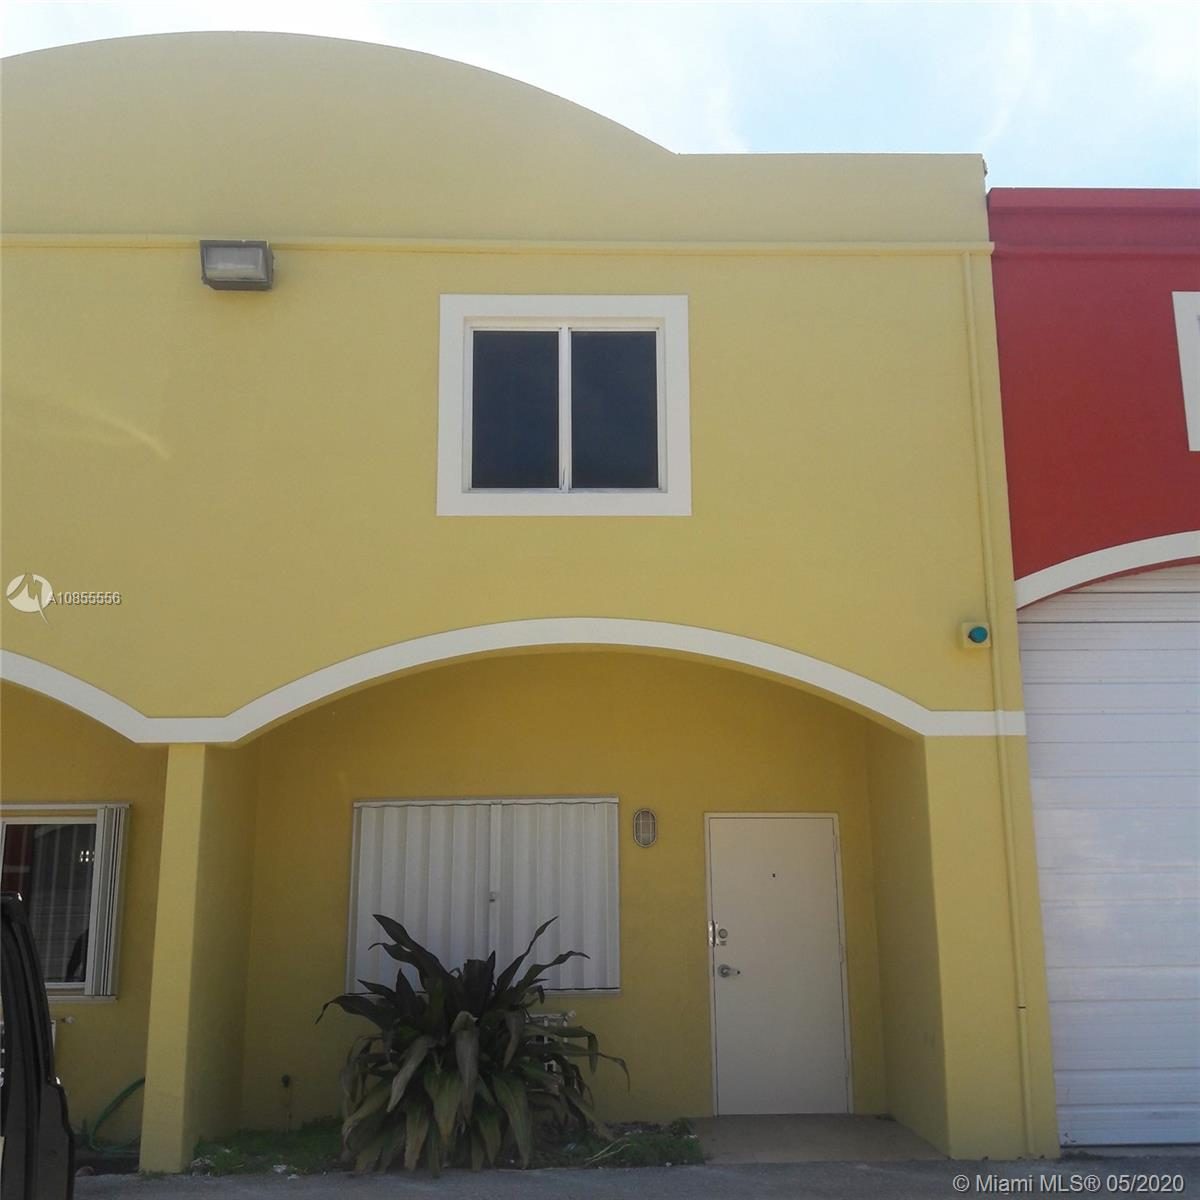 13921 SW 143rd Ct # 2, Miami, Florida 33186, ,Commercial Sale,For Sale,13921 SW 143rd Ct # 2,A10855556